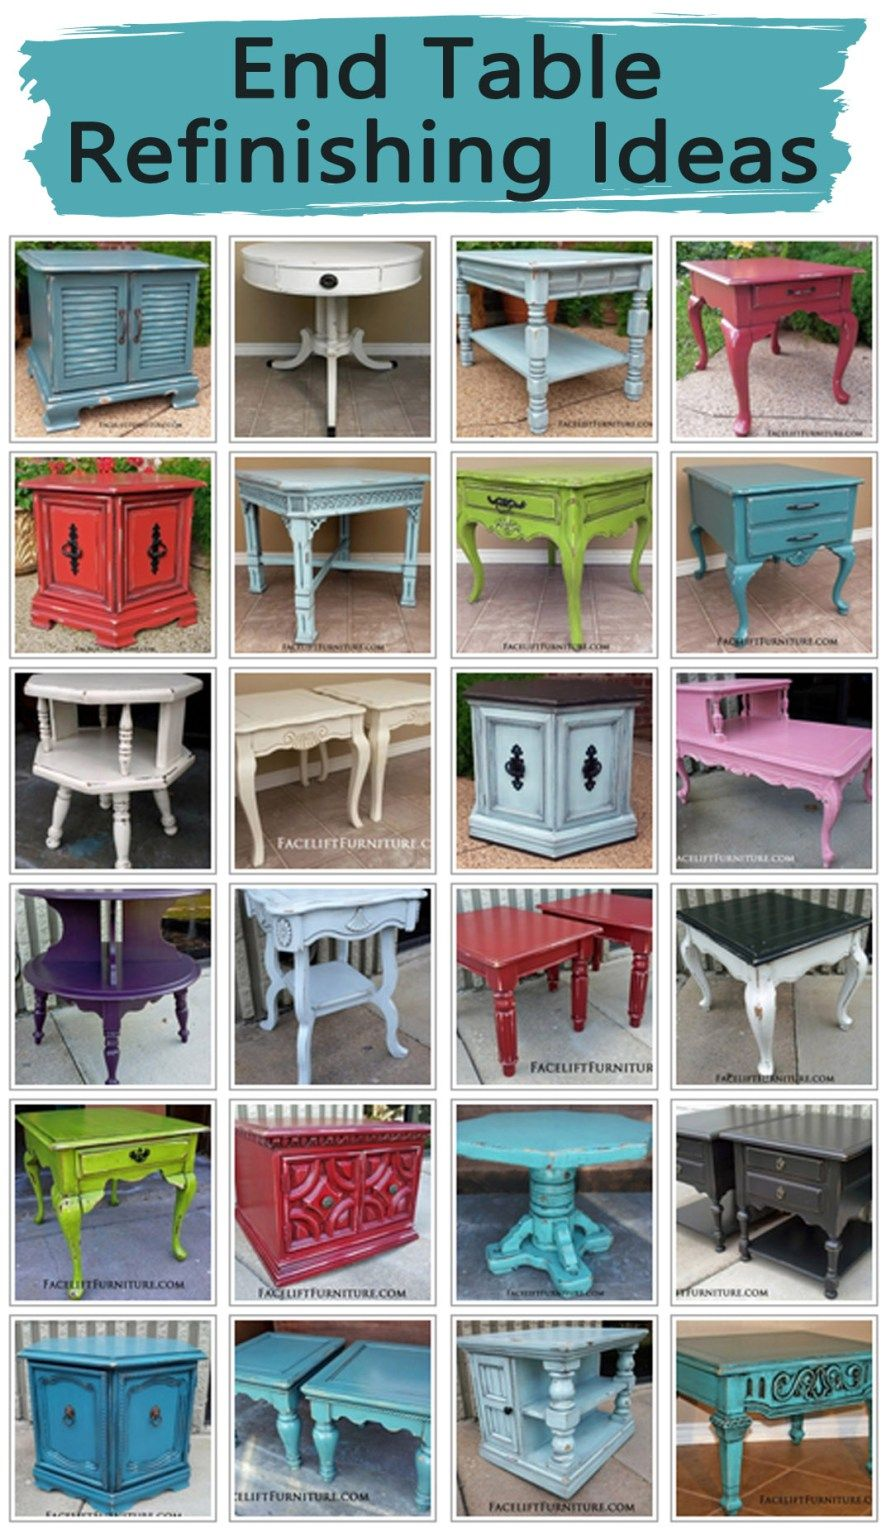 End Table Refinishing Ideas Learning Blog and Paint furniture